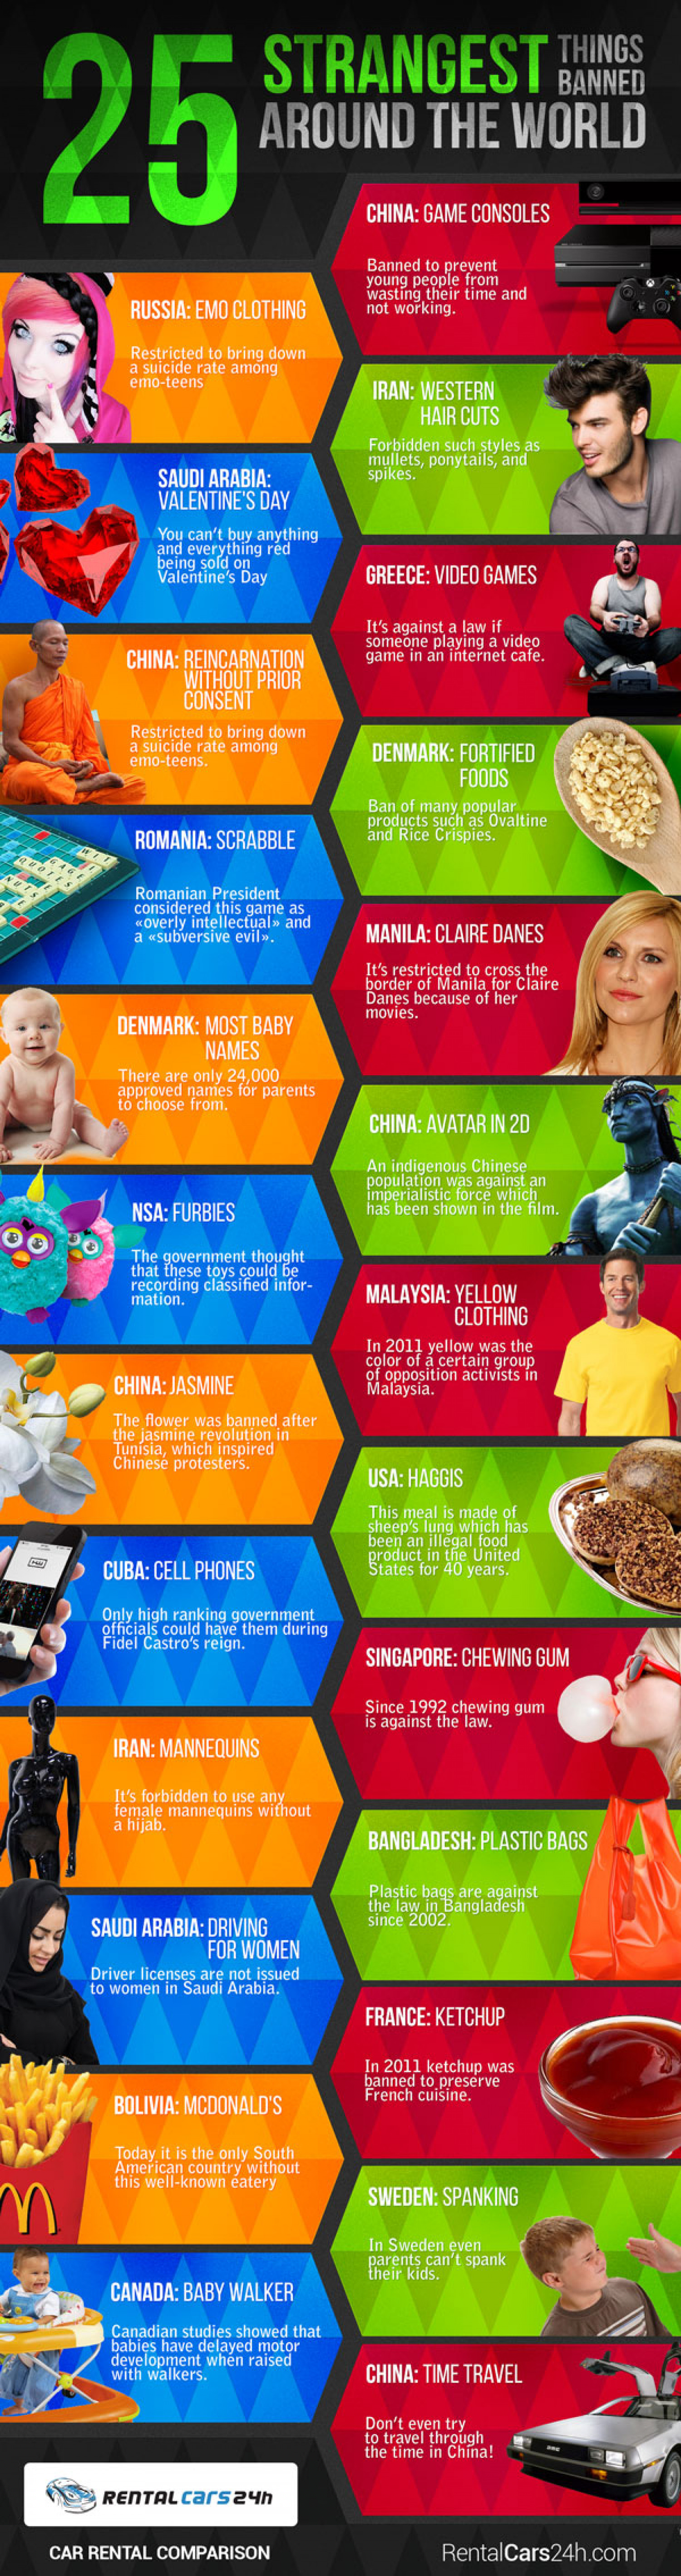 25 Strangest Things Banned Around The World! Infographic